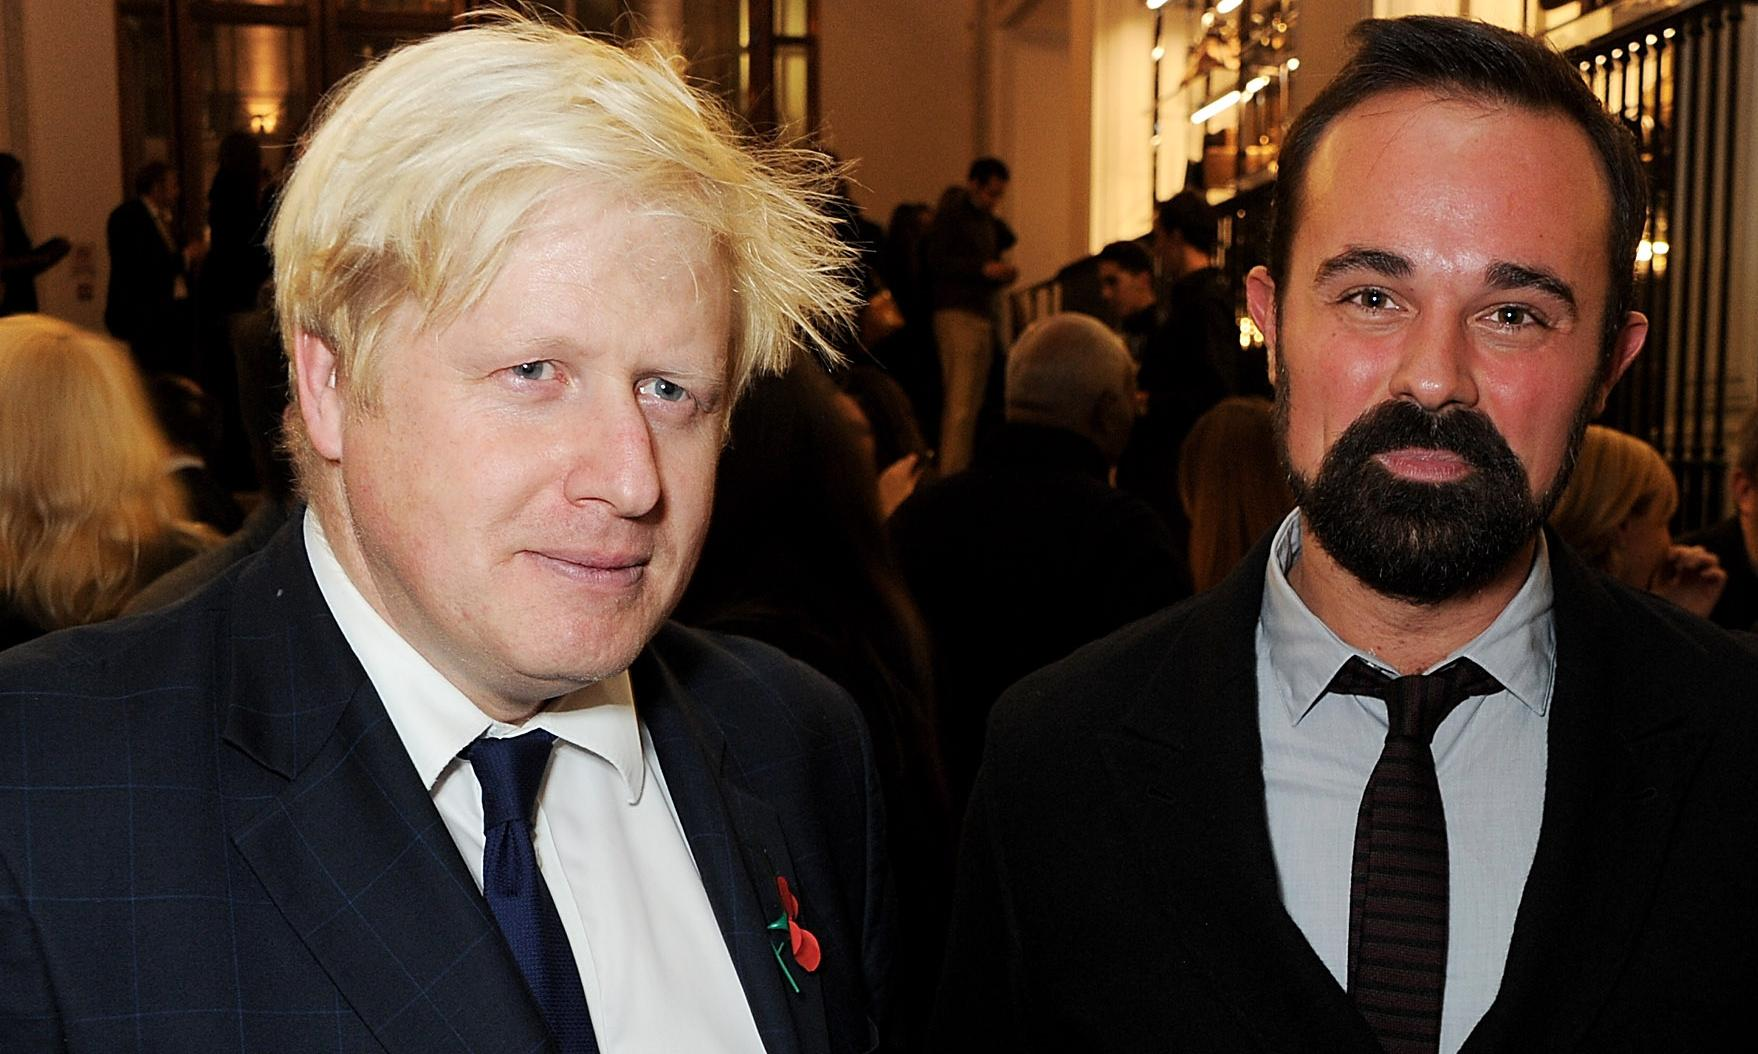 Johnson visit to Lebedev party after victory odd move for 'people's PM'